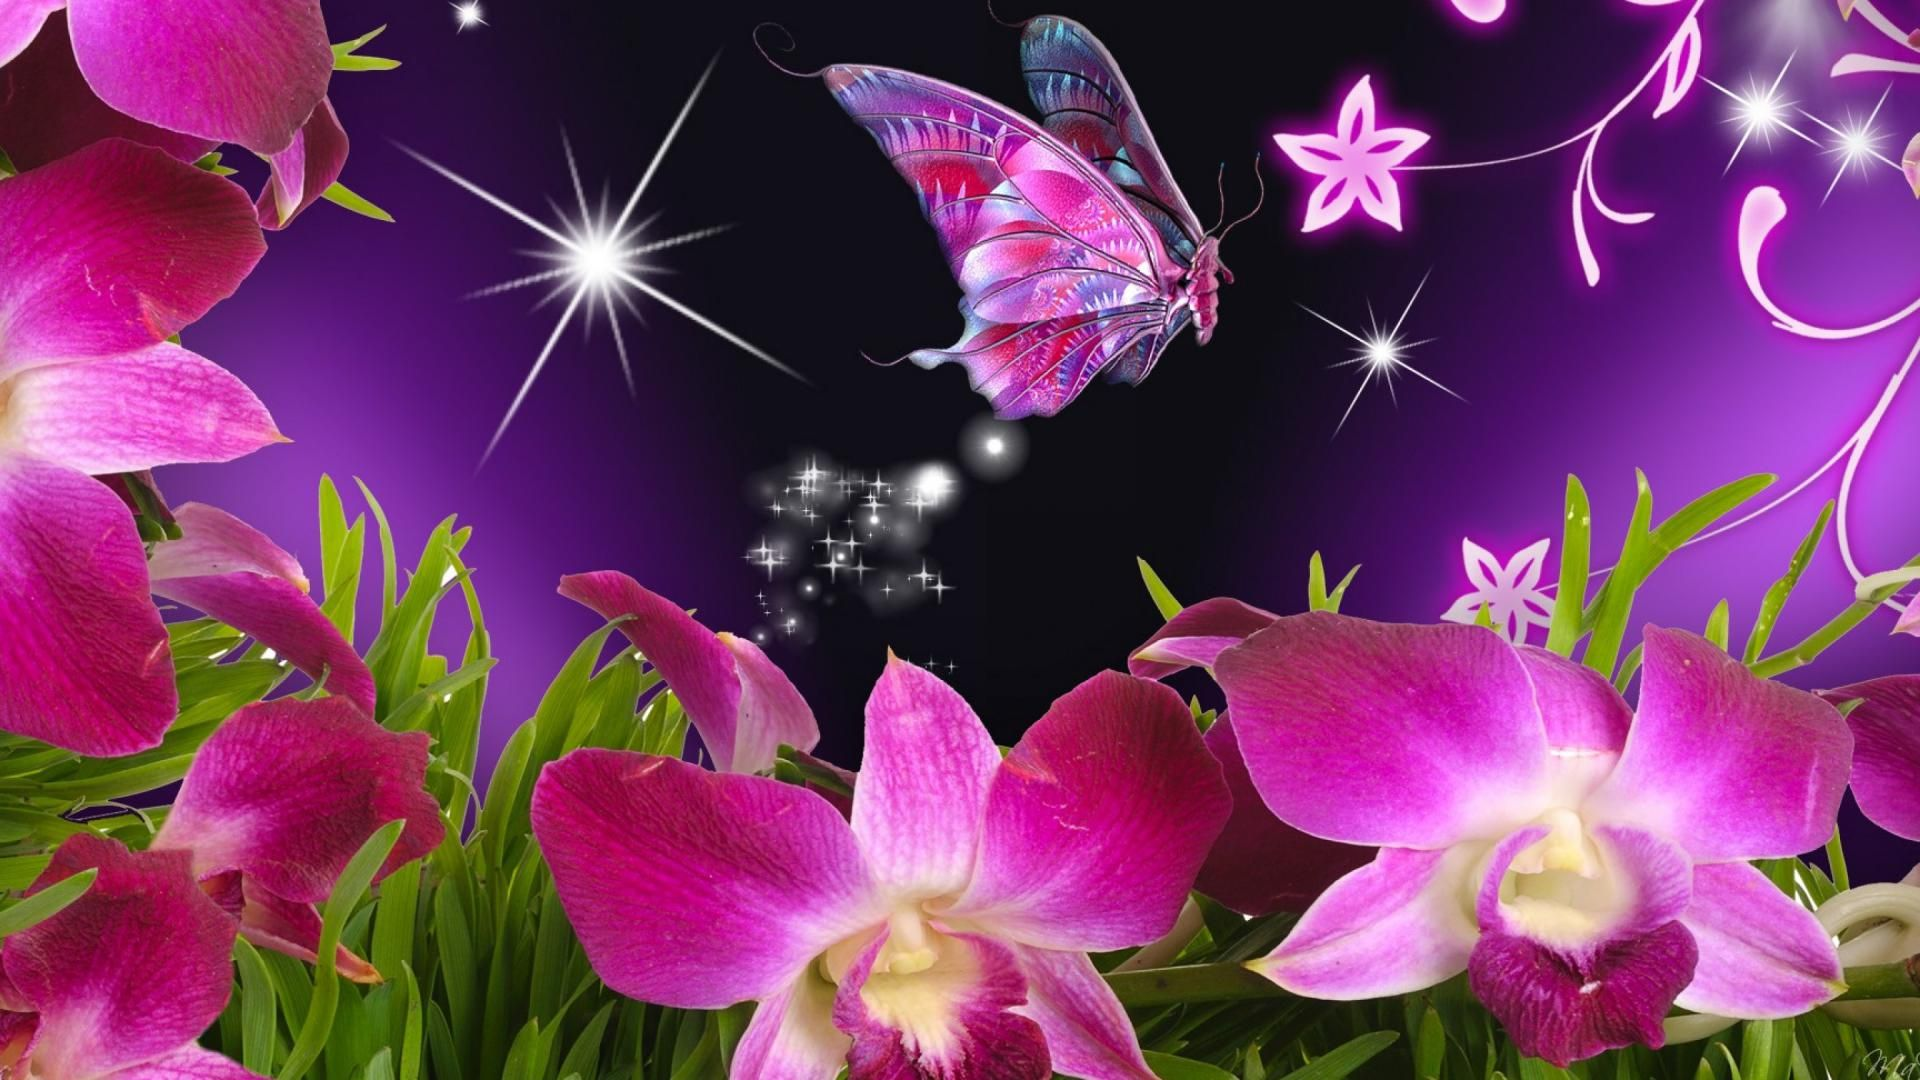 Nature Flower Wallpaper In 2019 Butterfly Photos